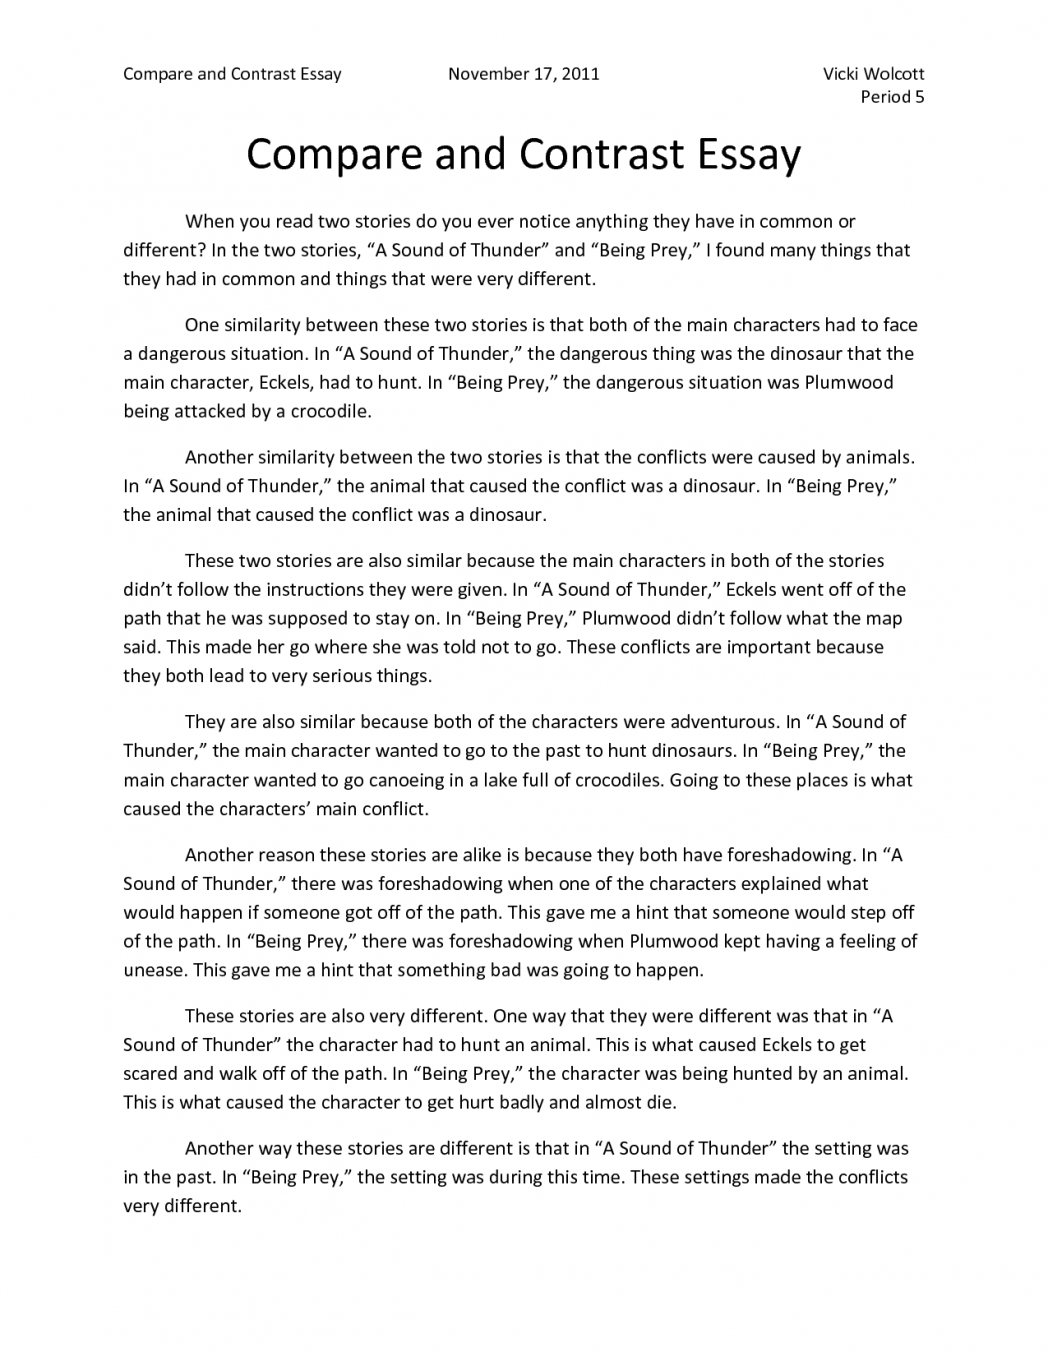 003 Compare And Contrast Essay Topics Example Good For College Students Sample Research Paper Writing Argumentative Fantastic Elementary Ielts Full